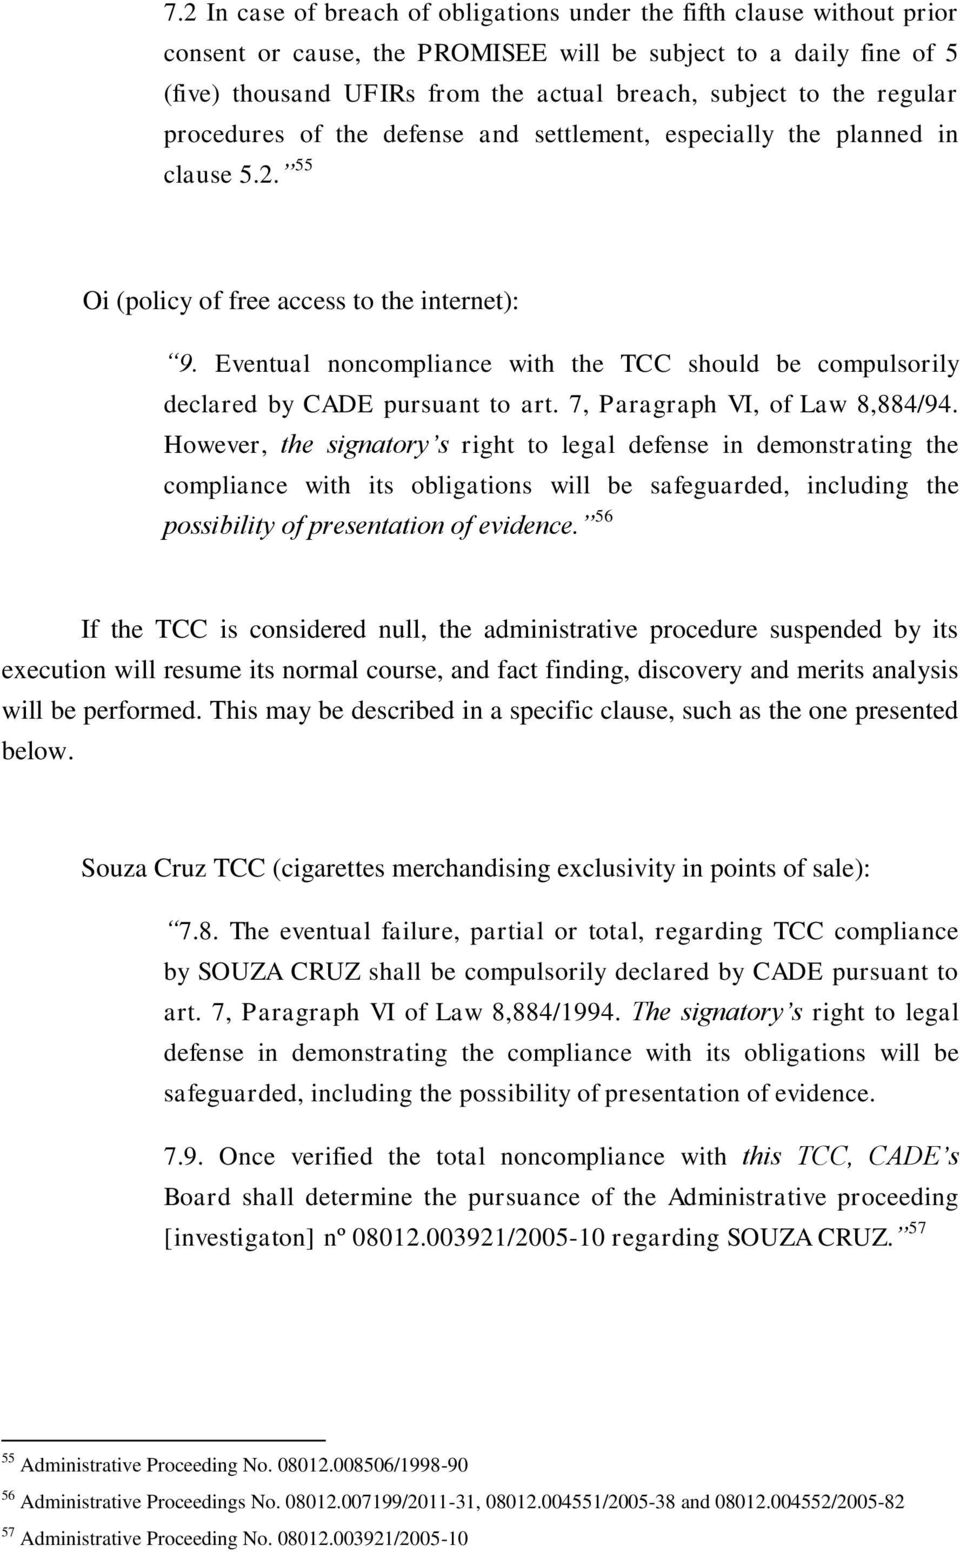 Eventual noncompliance with the TCC should be compulsorily declared by CADE pursuant to art. 7, Paragraph VI, of Law 8,884/94.